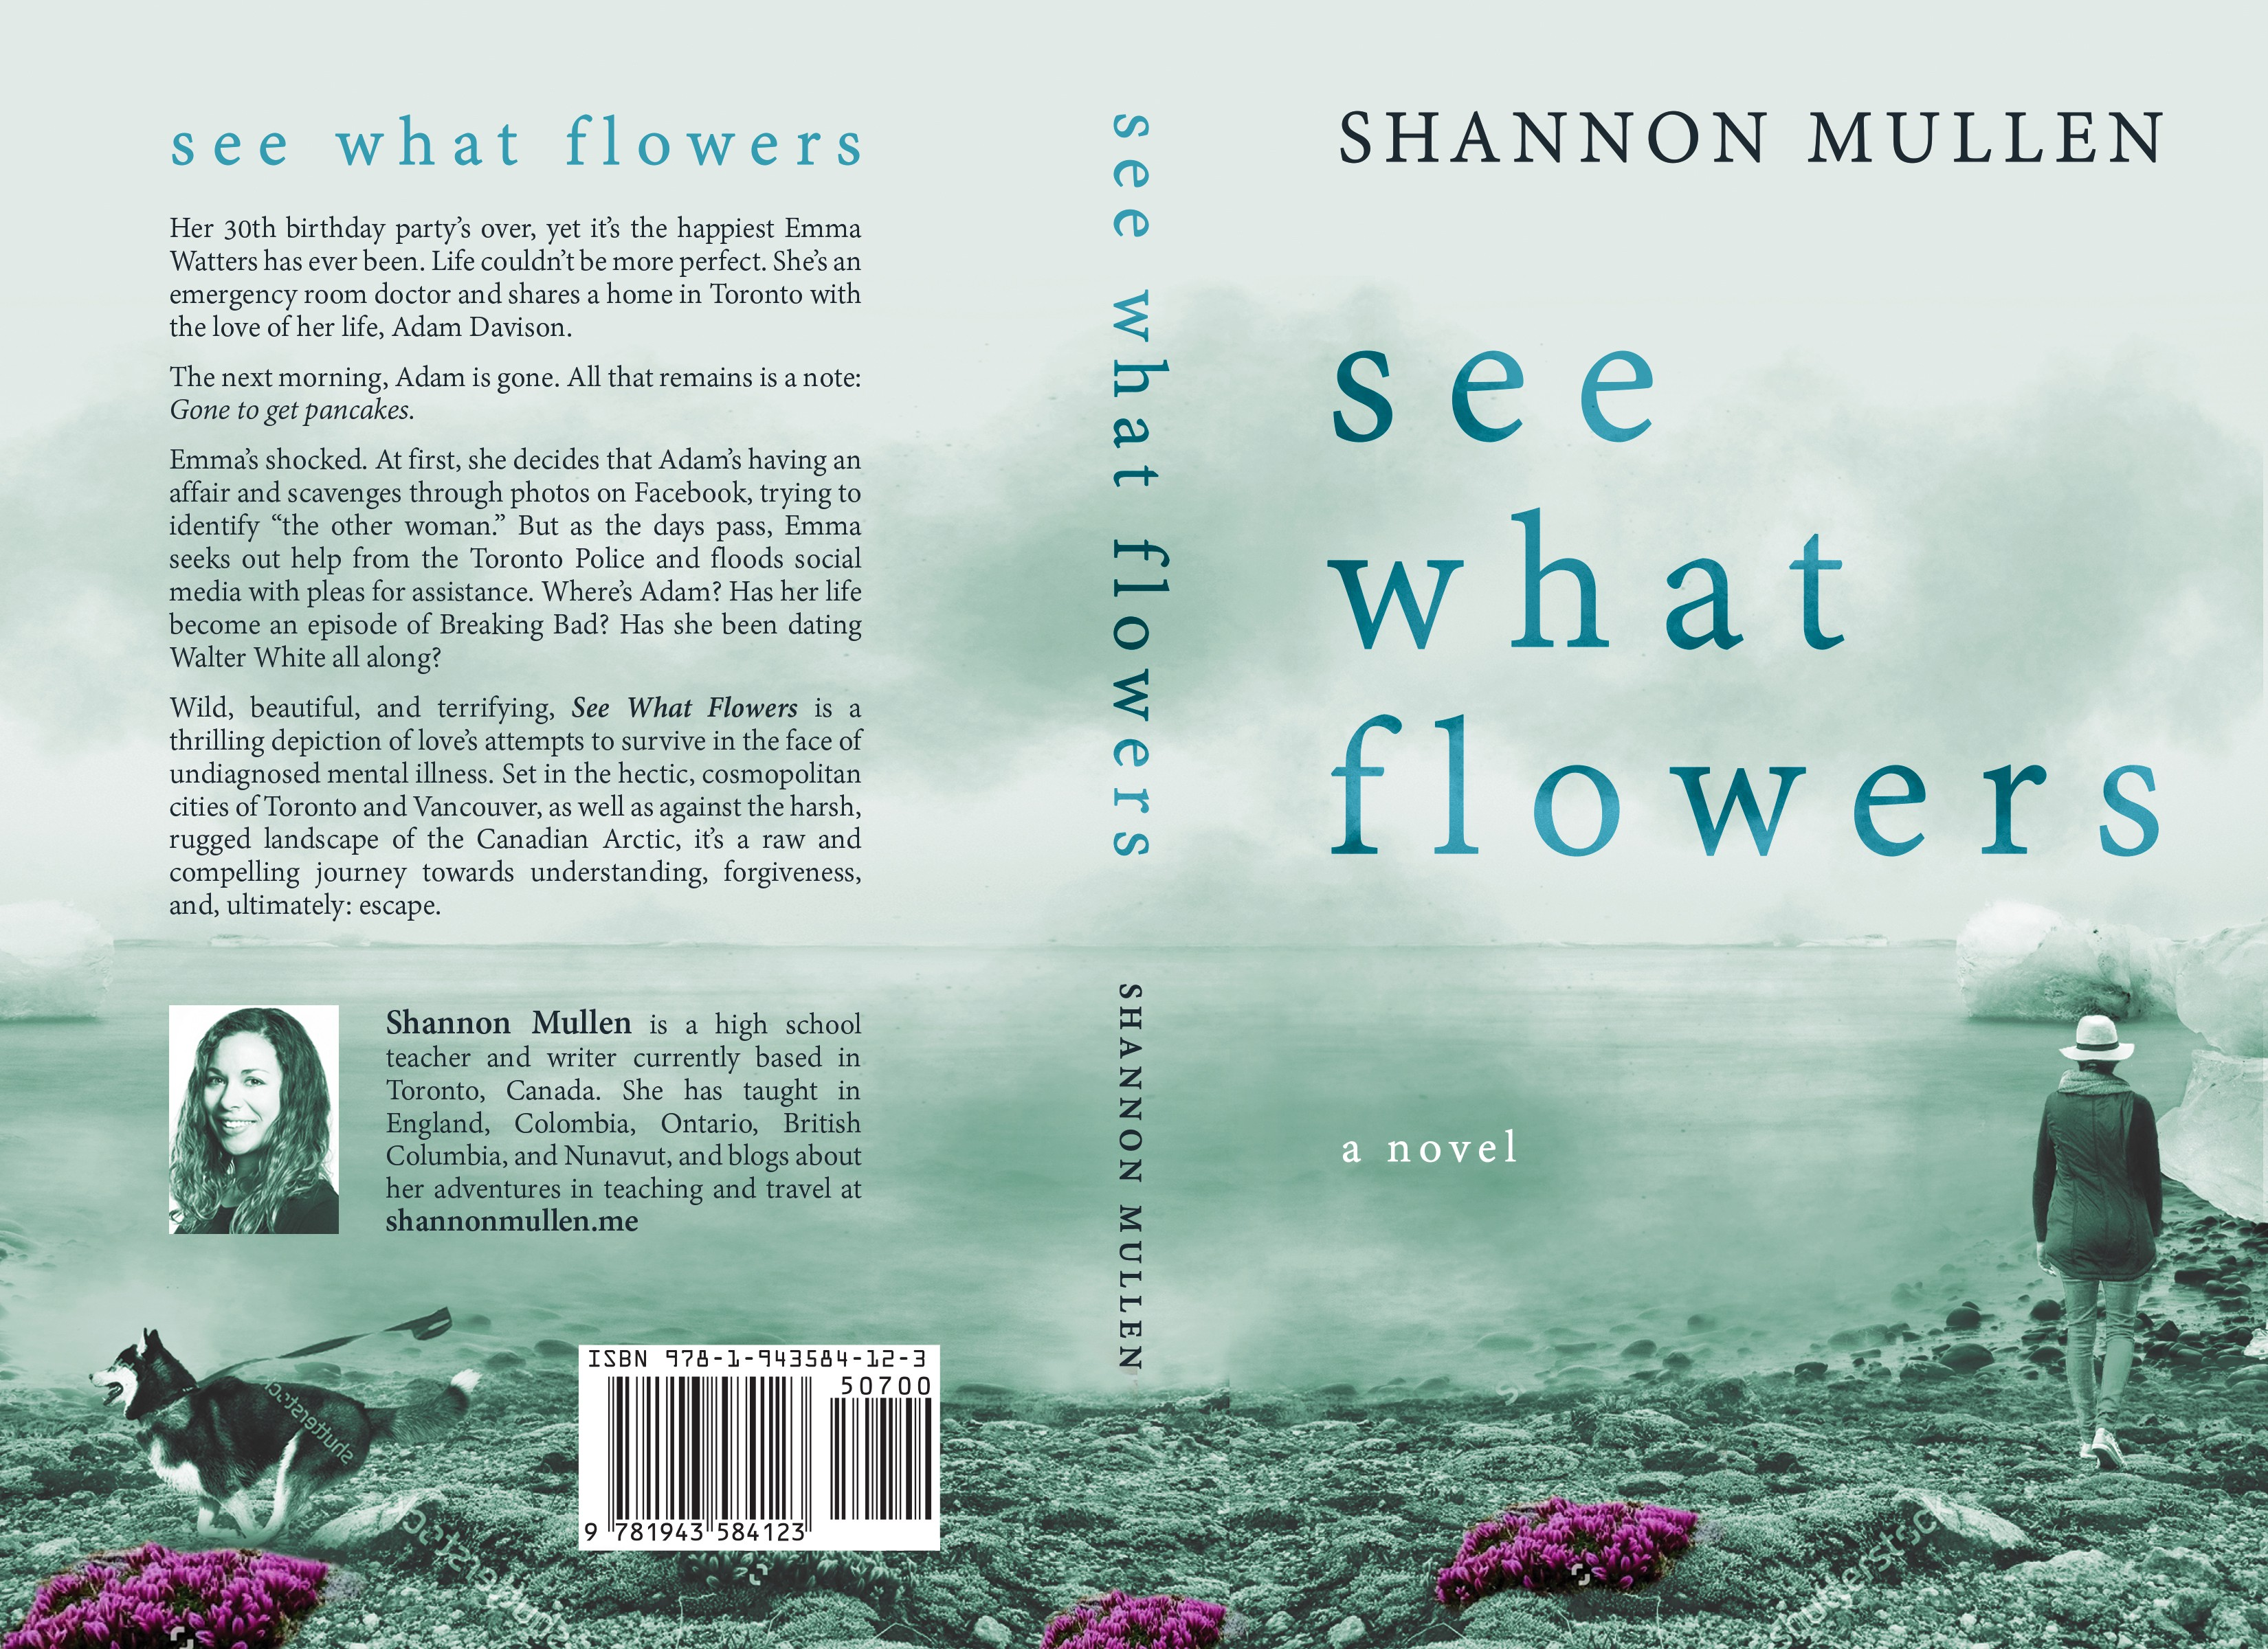 Design the book cover for See What Flowers, a novel about love & mental illness